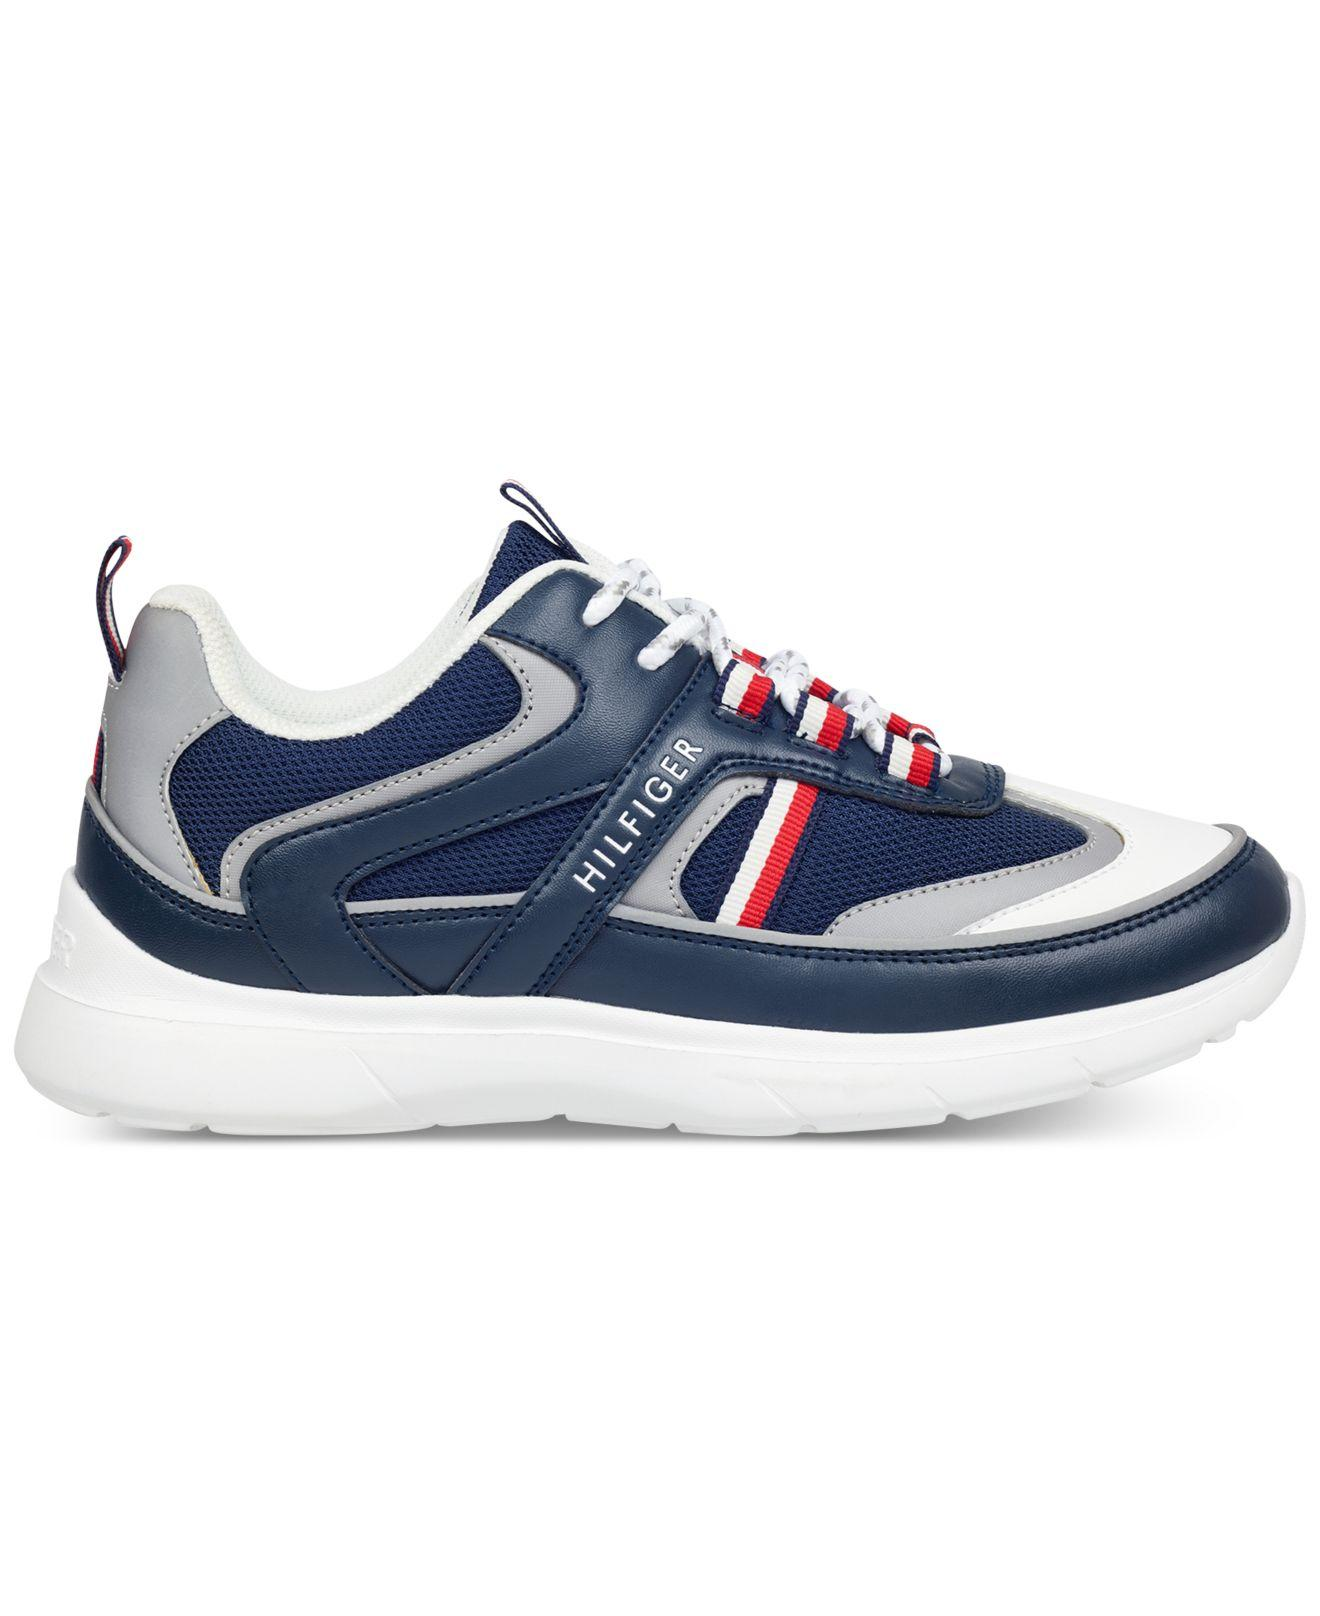 083c9c1ff29e0b Lyst - Tommy Hilfiger Cedro Sneakers in Blue